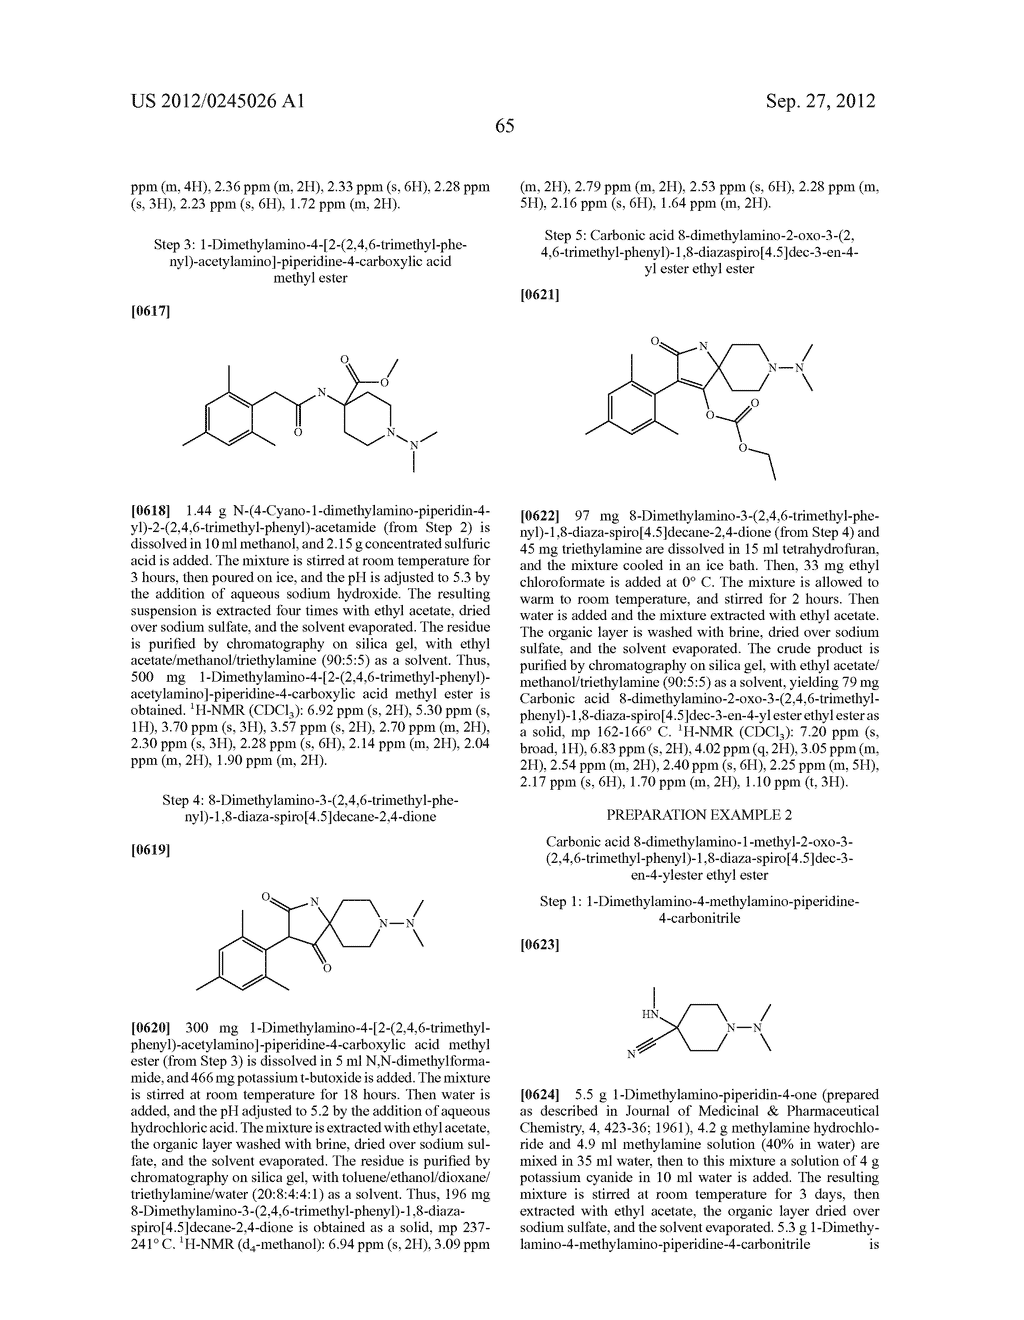 SPIRO FUSED 1-AMINO - PIPERDINE PYRROLIDINE DIONE DERIVATIVES WITH     PESTICIDAL ACTIVITY - diagram, schematic, and image 66